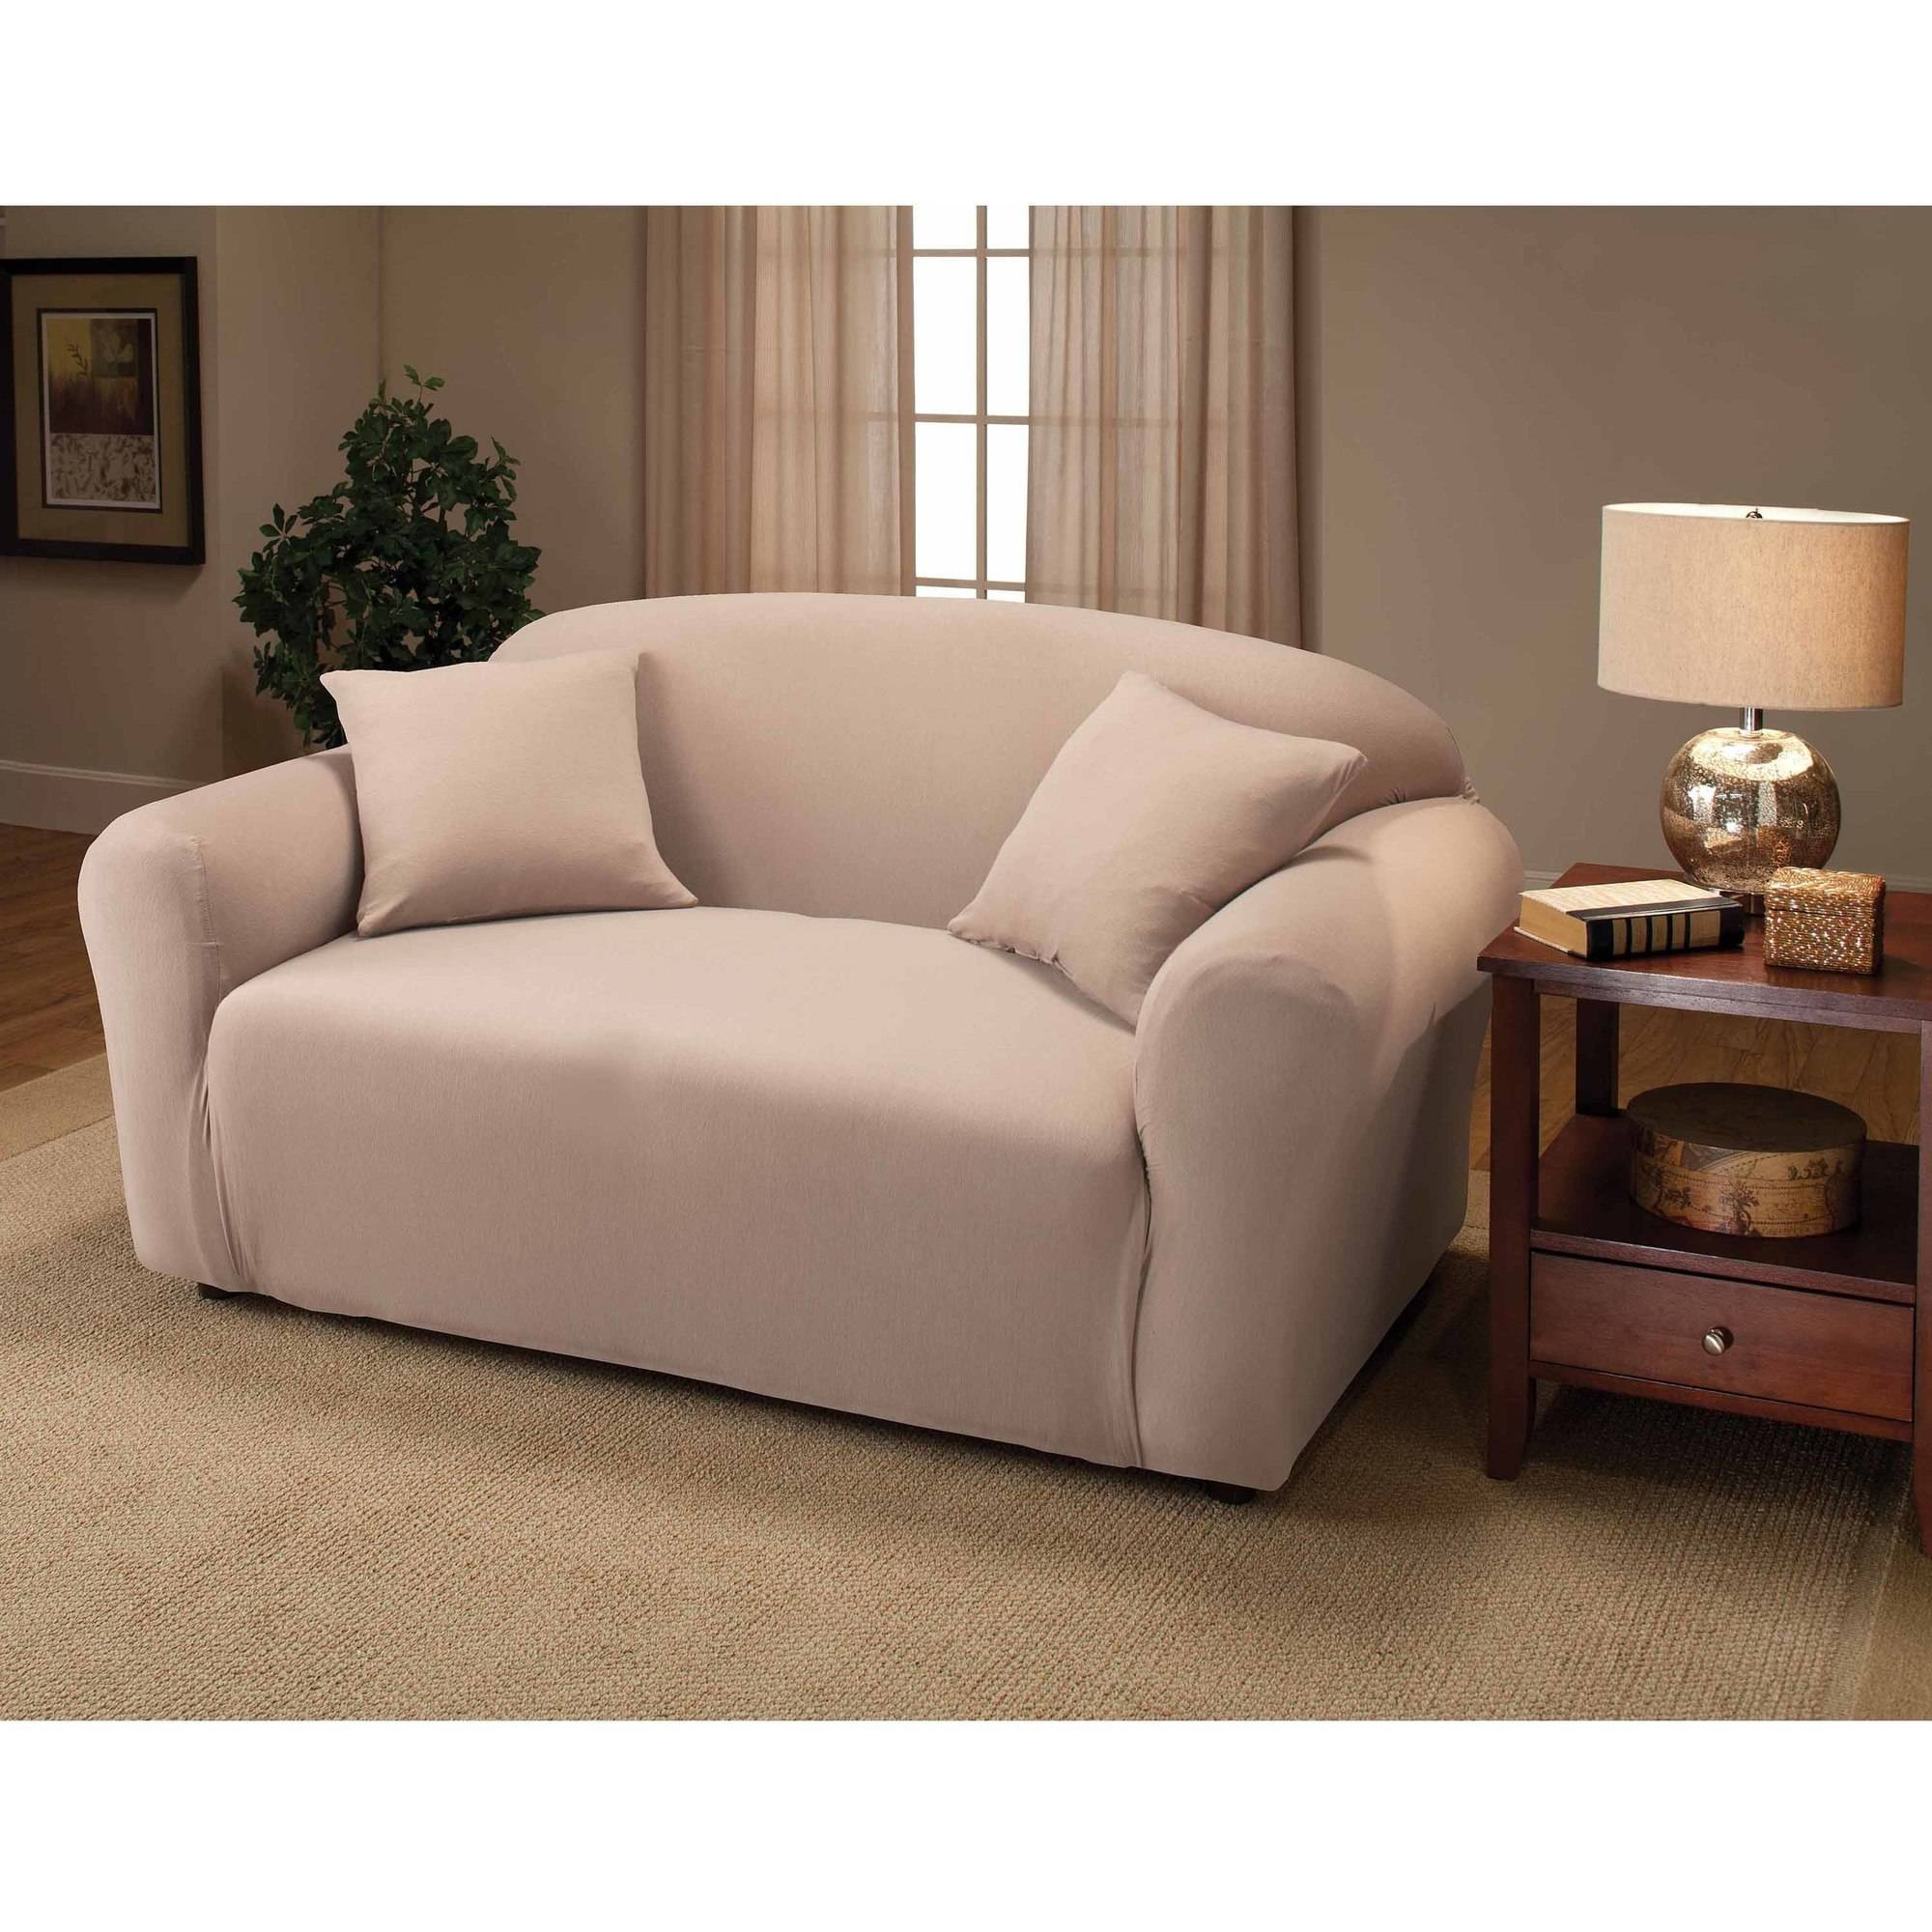 Jersey Stretch Loveseat Slipcover